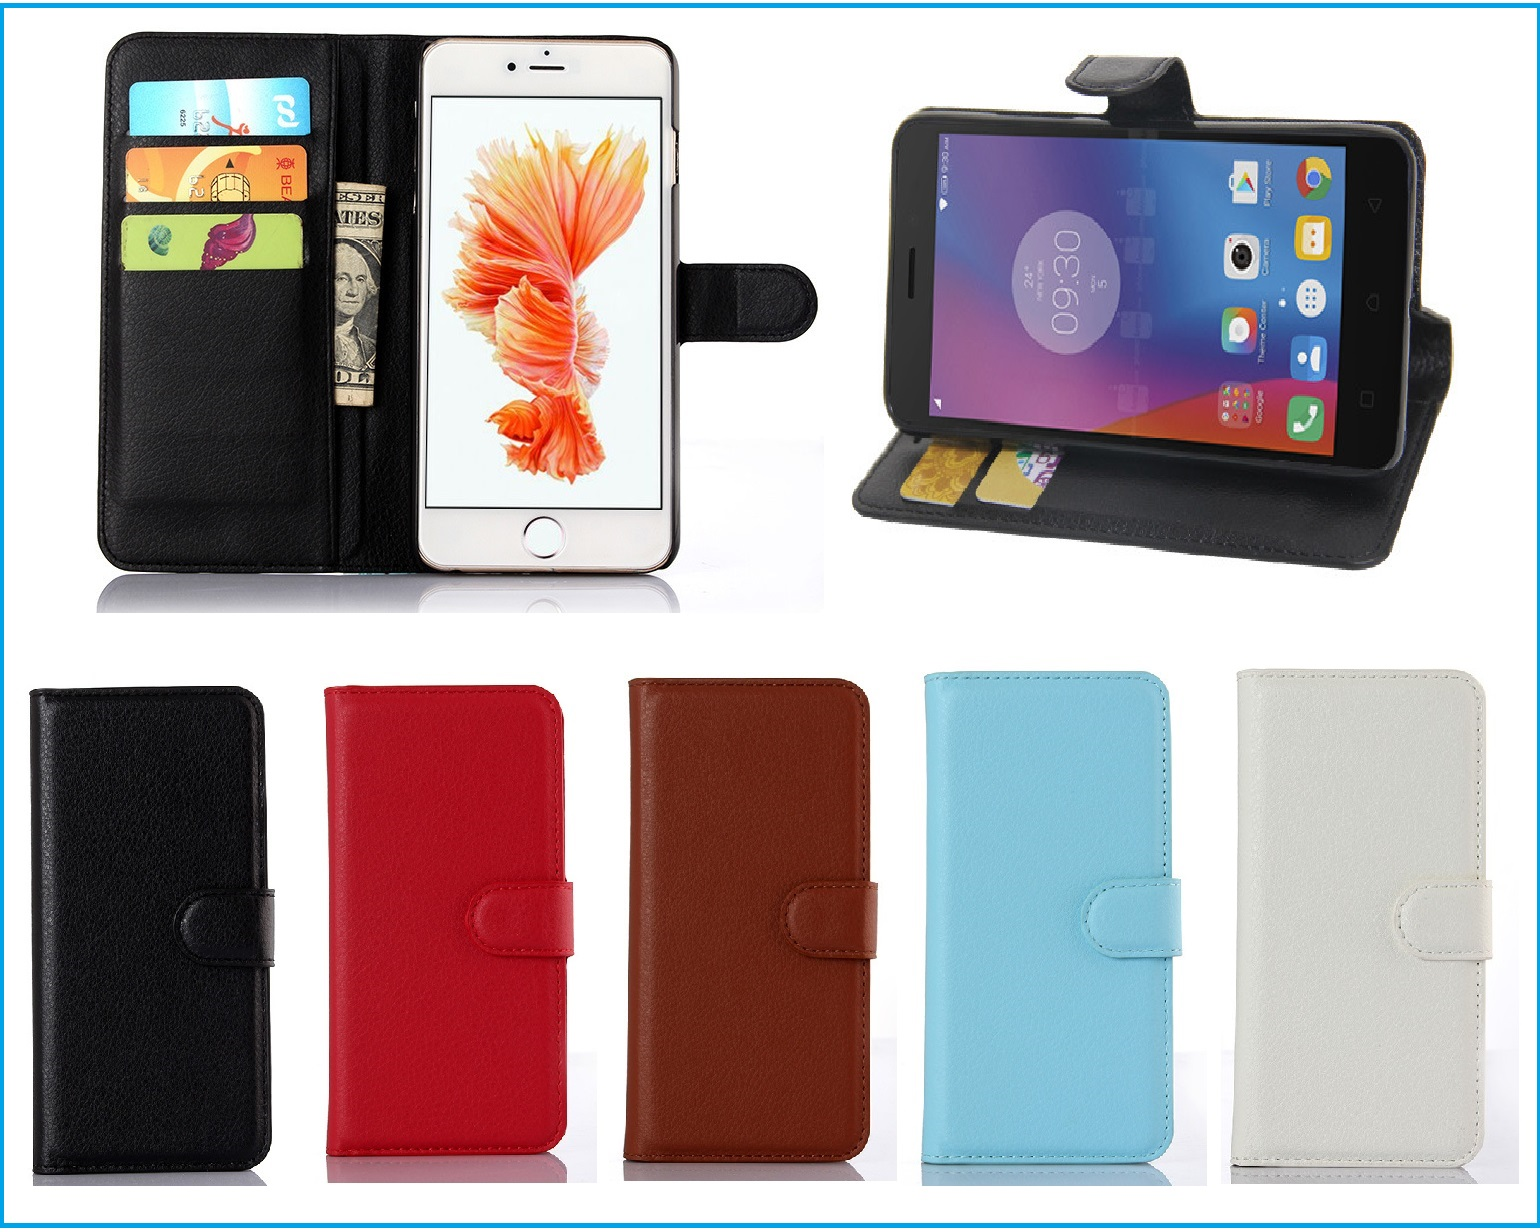 5 Colors Hot!! For <font><b>HomTom</b></font> <font><b>S16</b></font> <font><b>Case</b></font> Ultra-thin Flip Leather Exclusive Phone Cover Folio Book Card Slots Free Shipping image